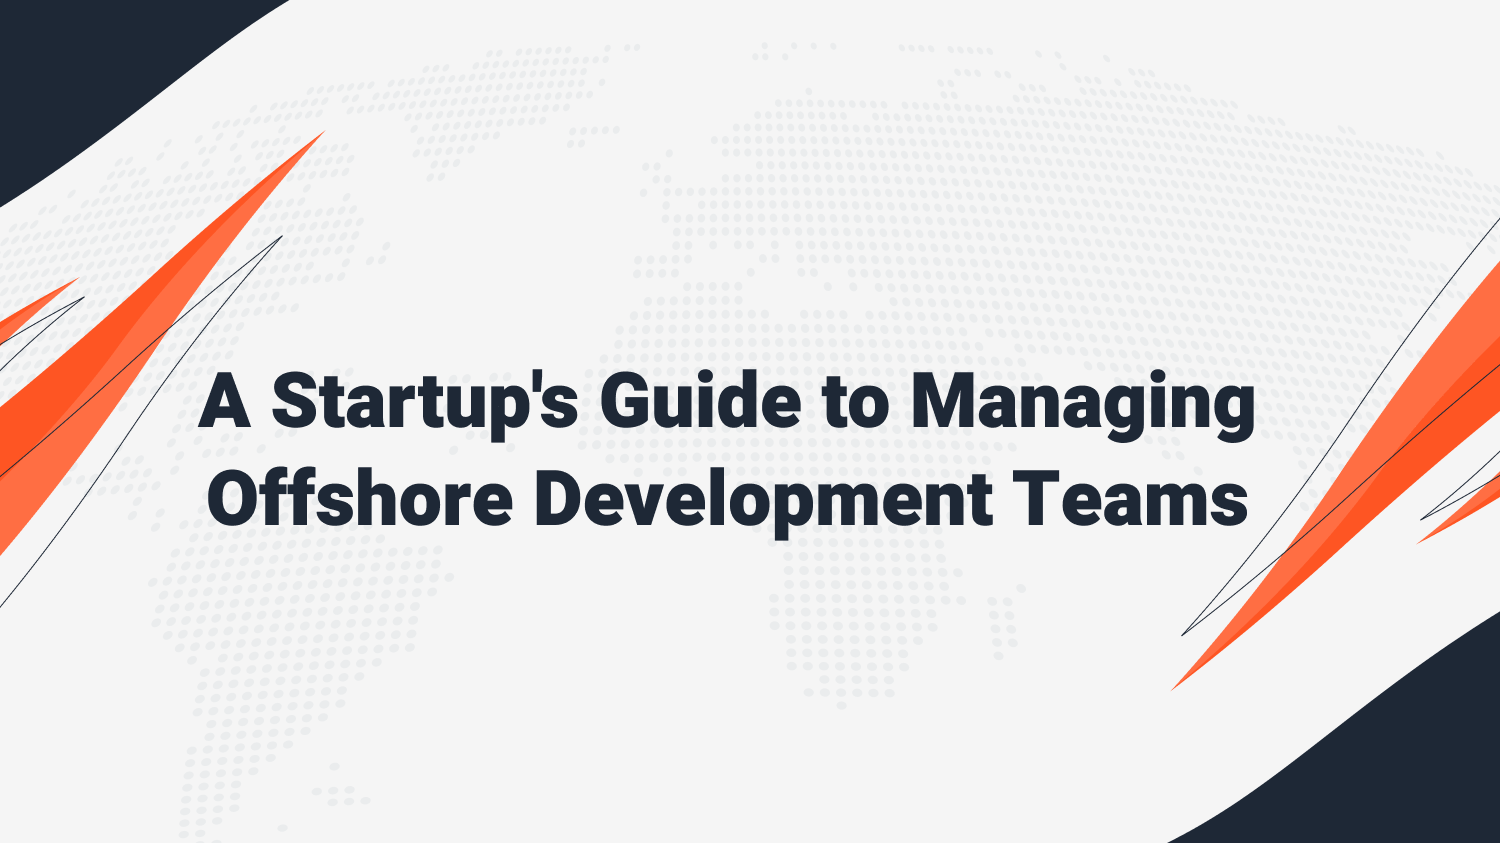 A Startup's Guide to Managing Offshore Development Teams